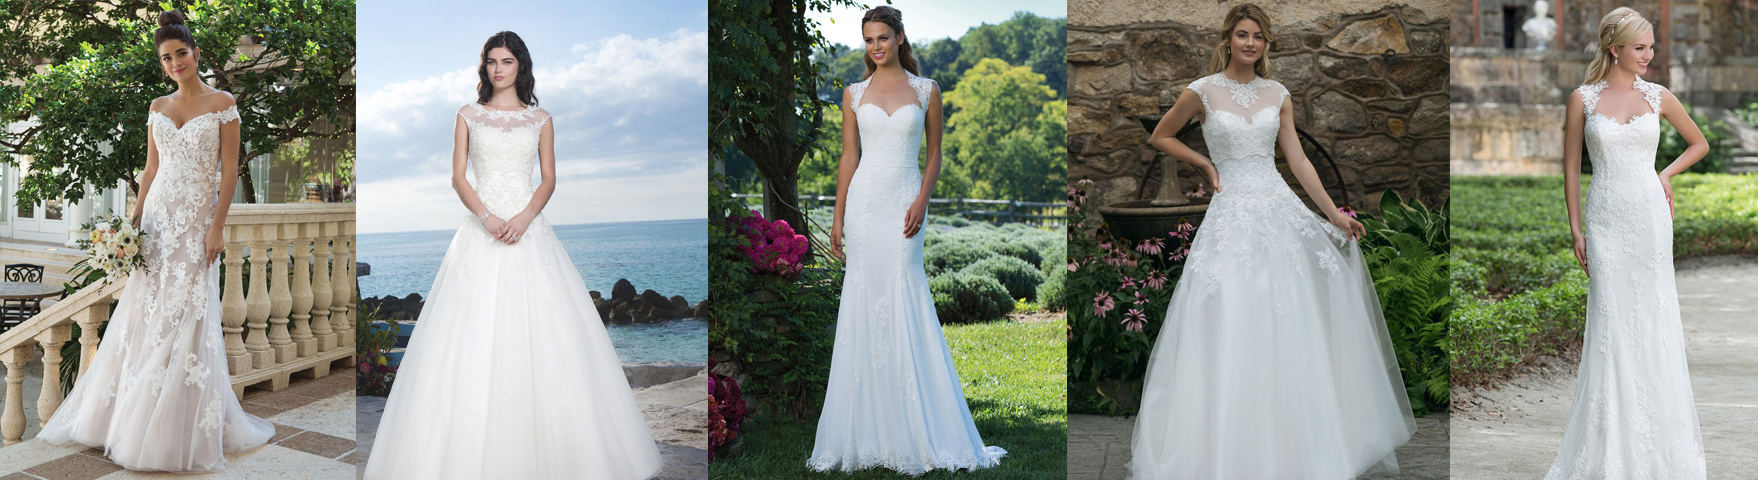 Sincerity Sottero Wedding Dresses